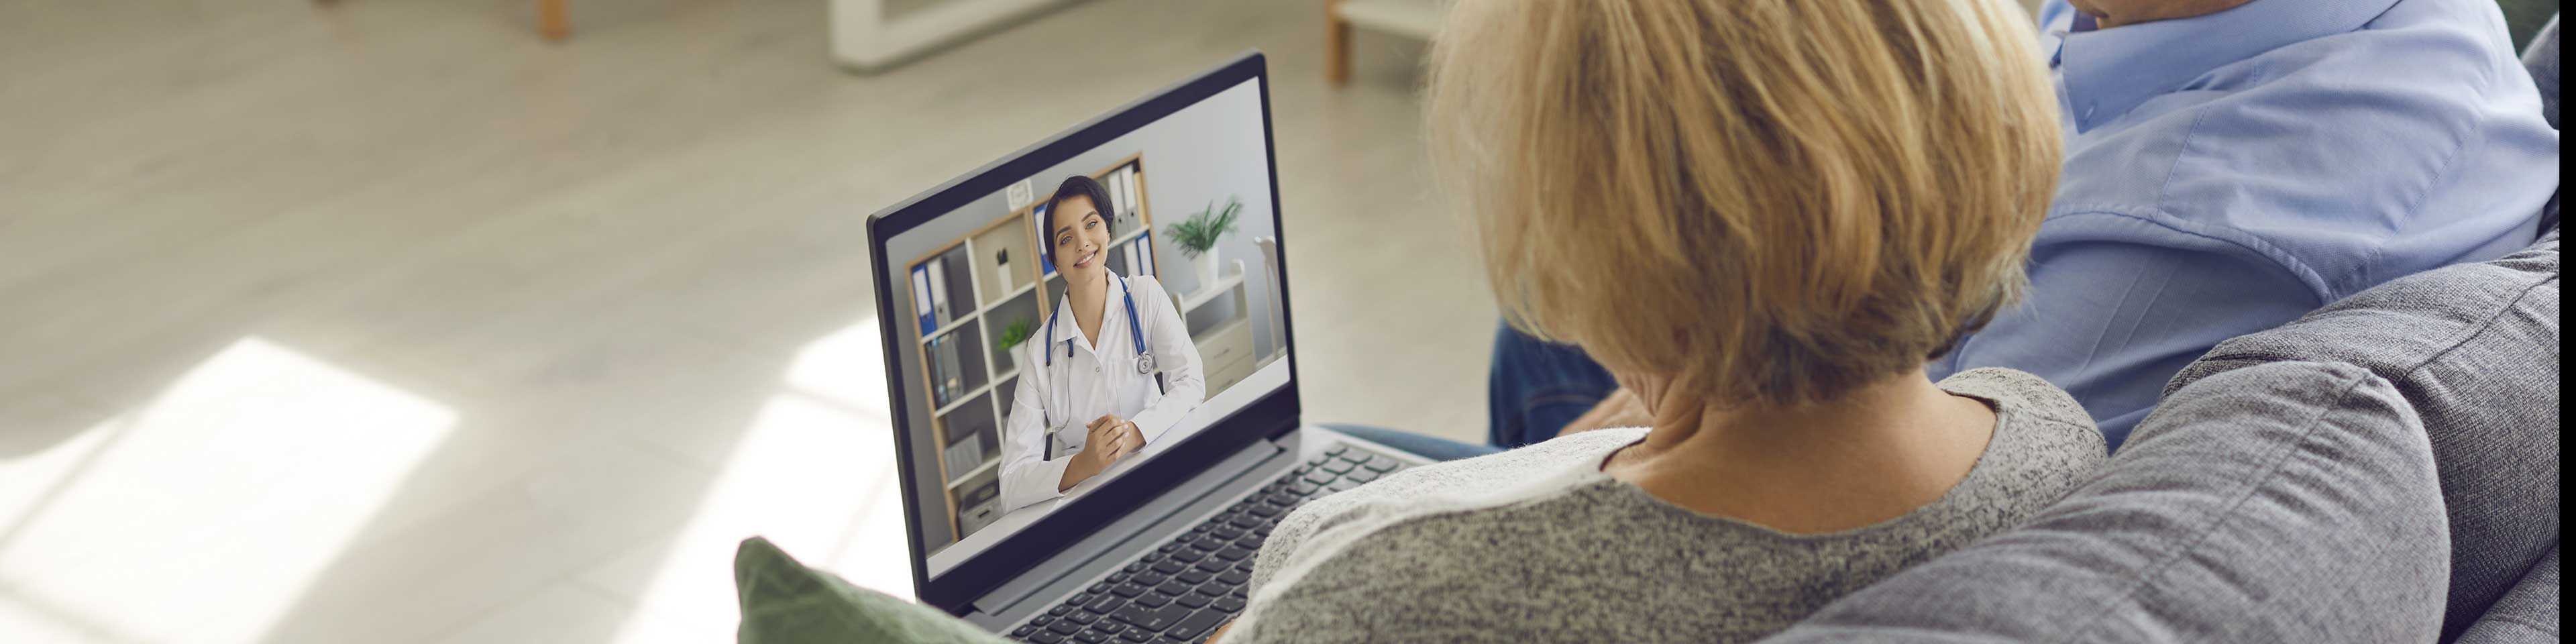 Florida's out-of-state telehealth registration law